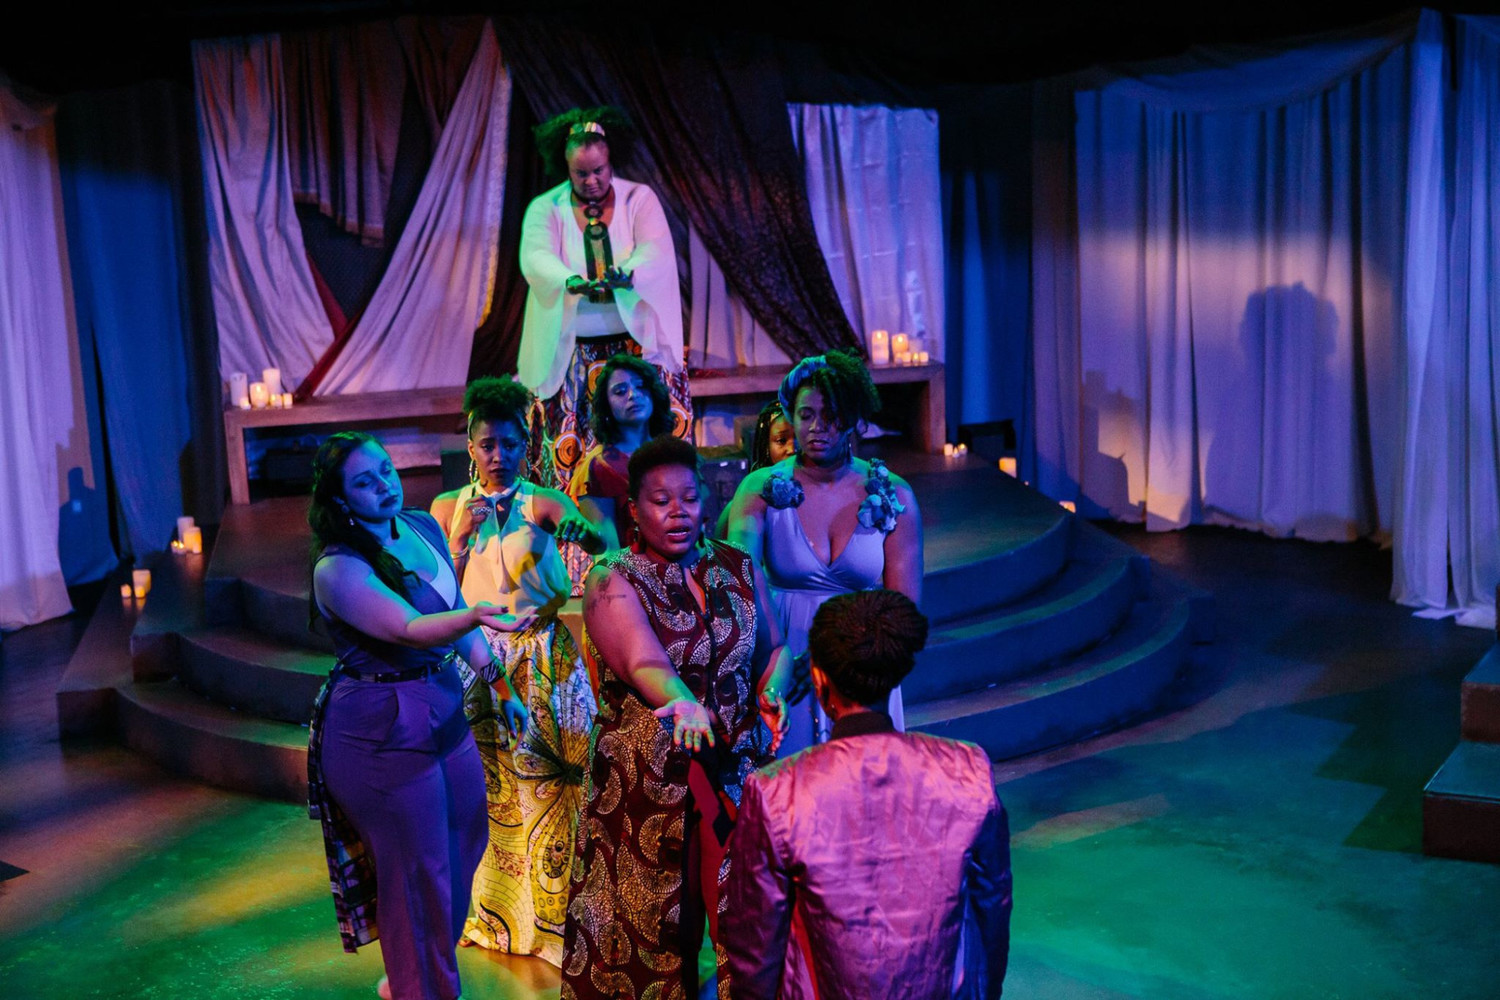 BWW Review: FOR COLORED GIRLS WHO HAVE CONSIDERED SUICIDE / WHEN THE RAINBOW IS ENUF at Open Stage Of Harrisburg